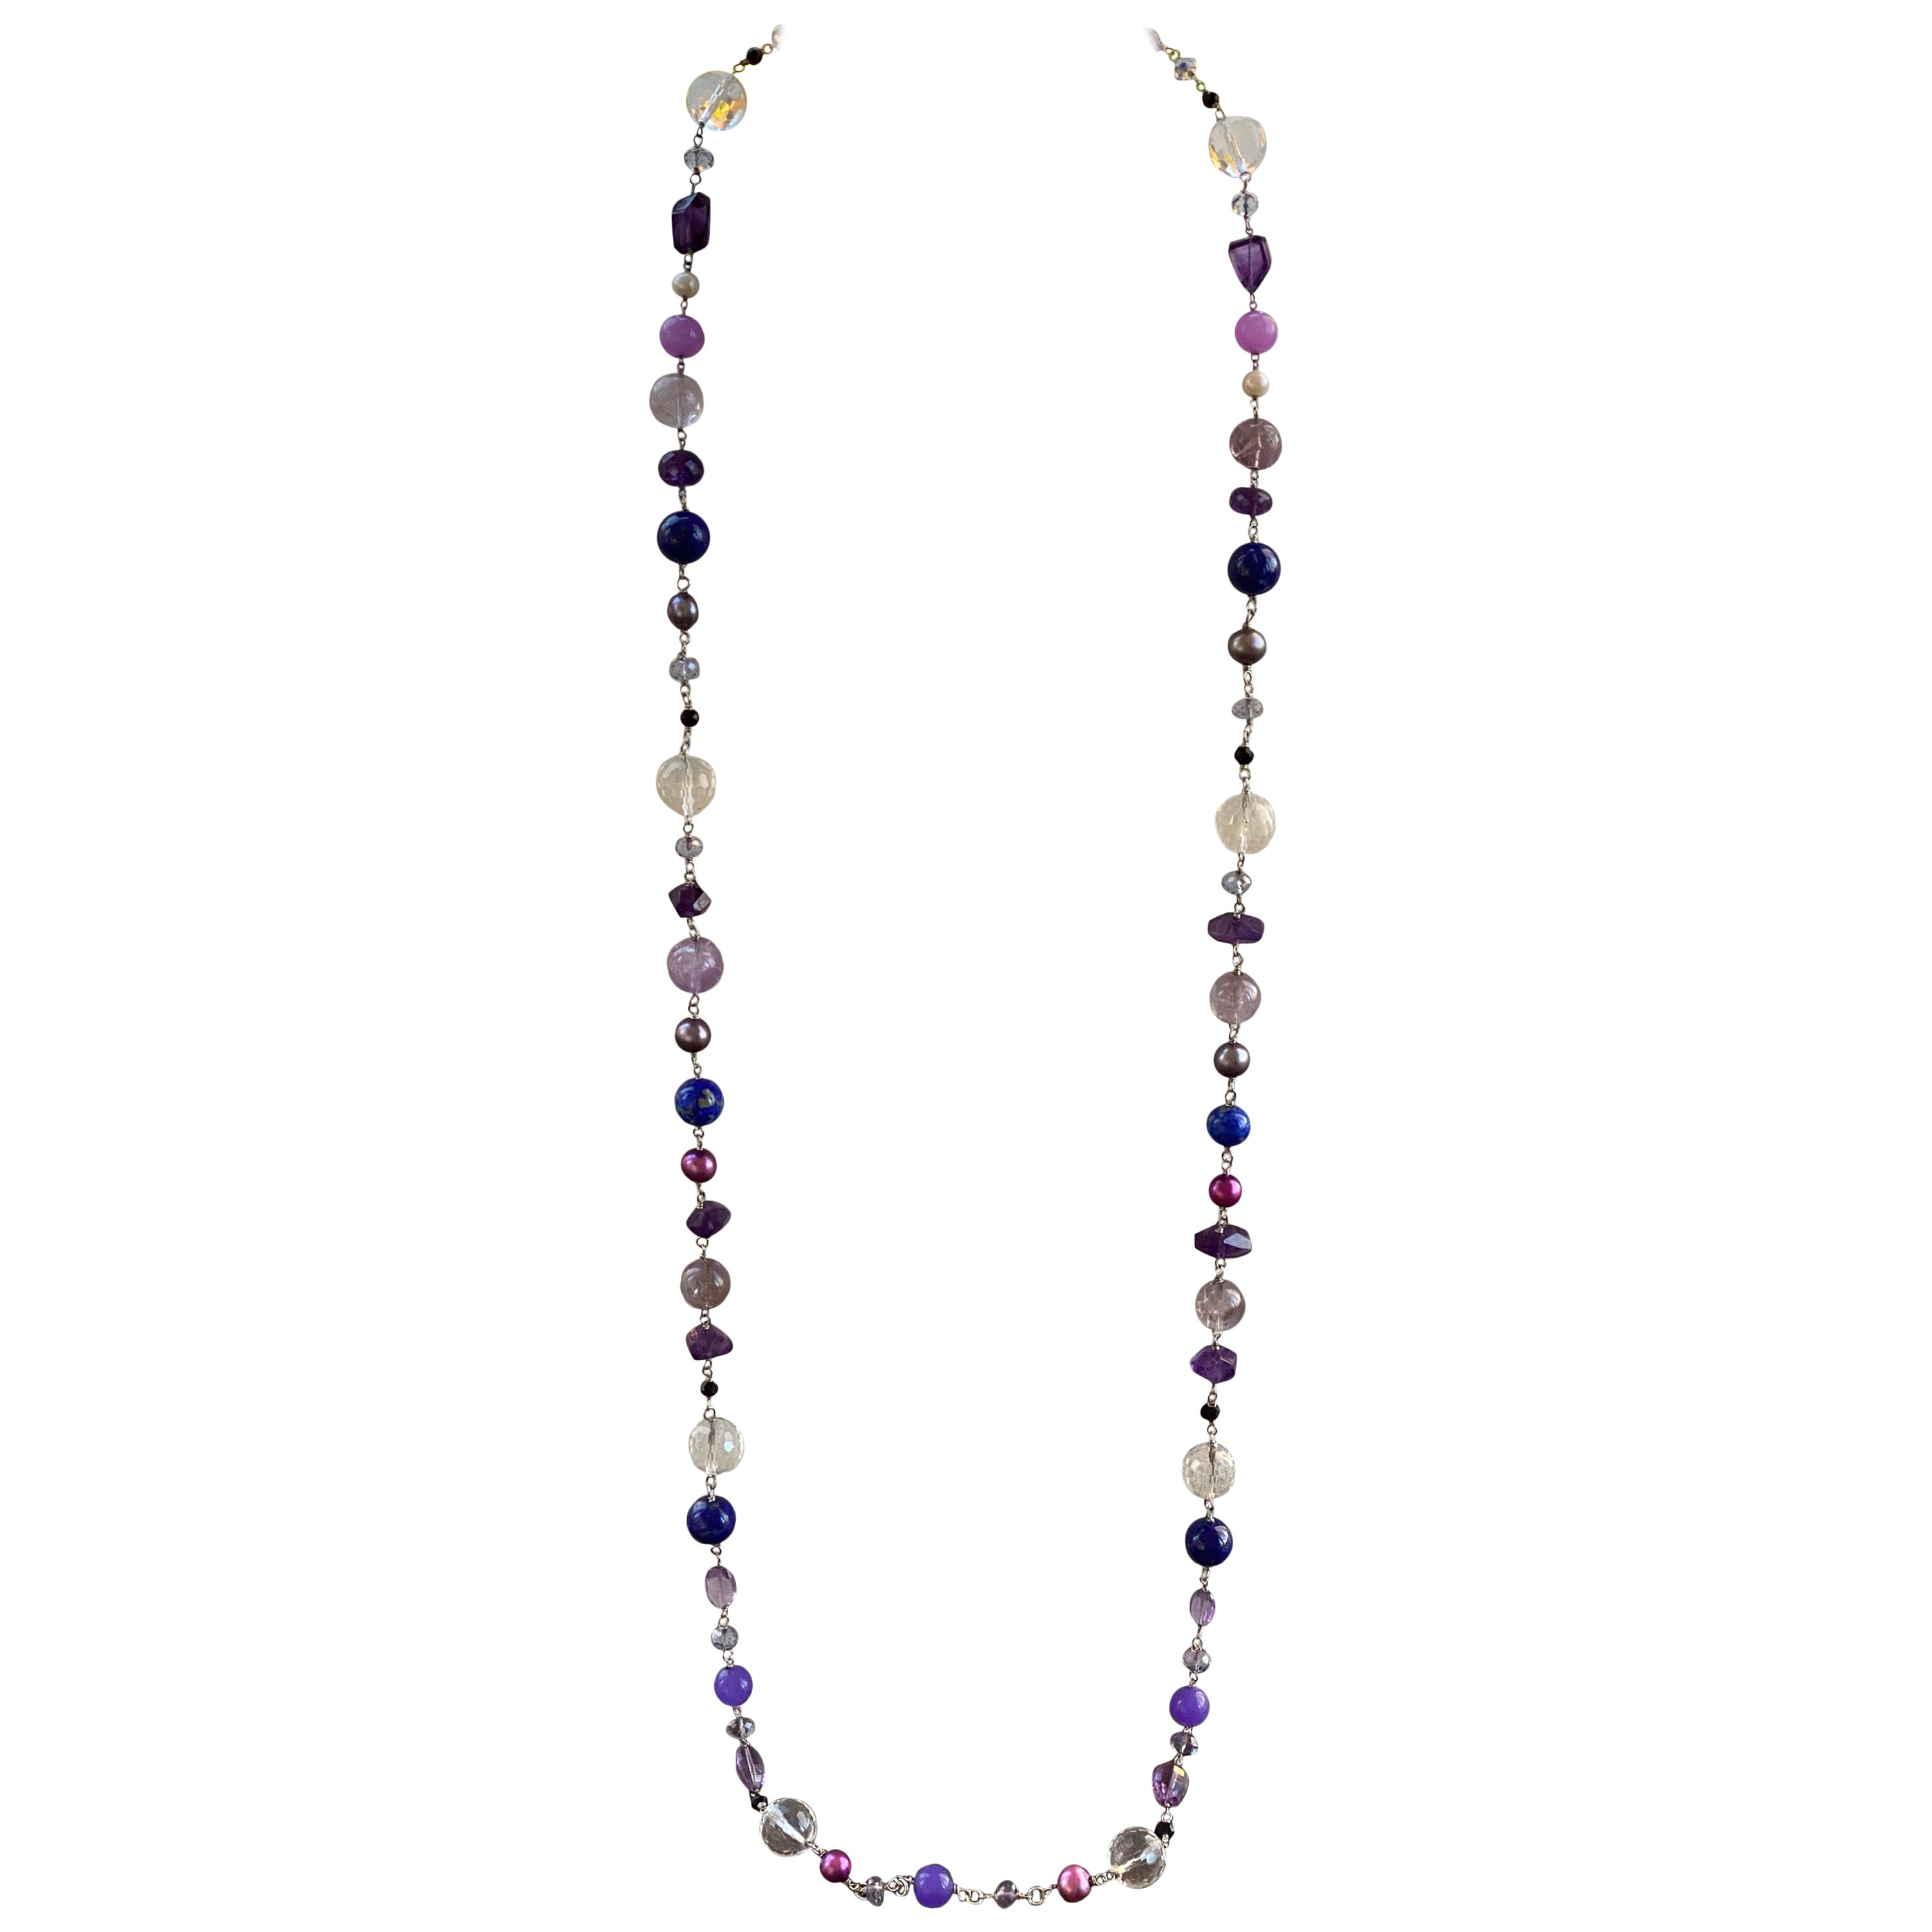 Long Amethyst and Multi-Gemstone Beaded Necklace with Sterling Silver Clasp